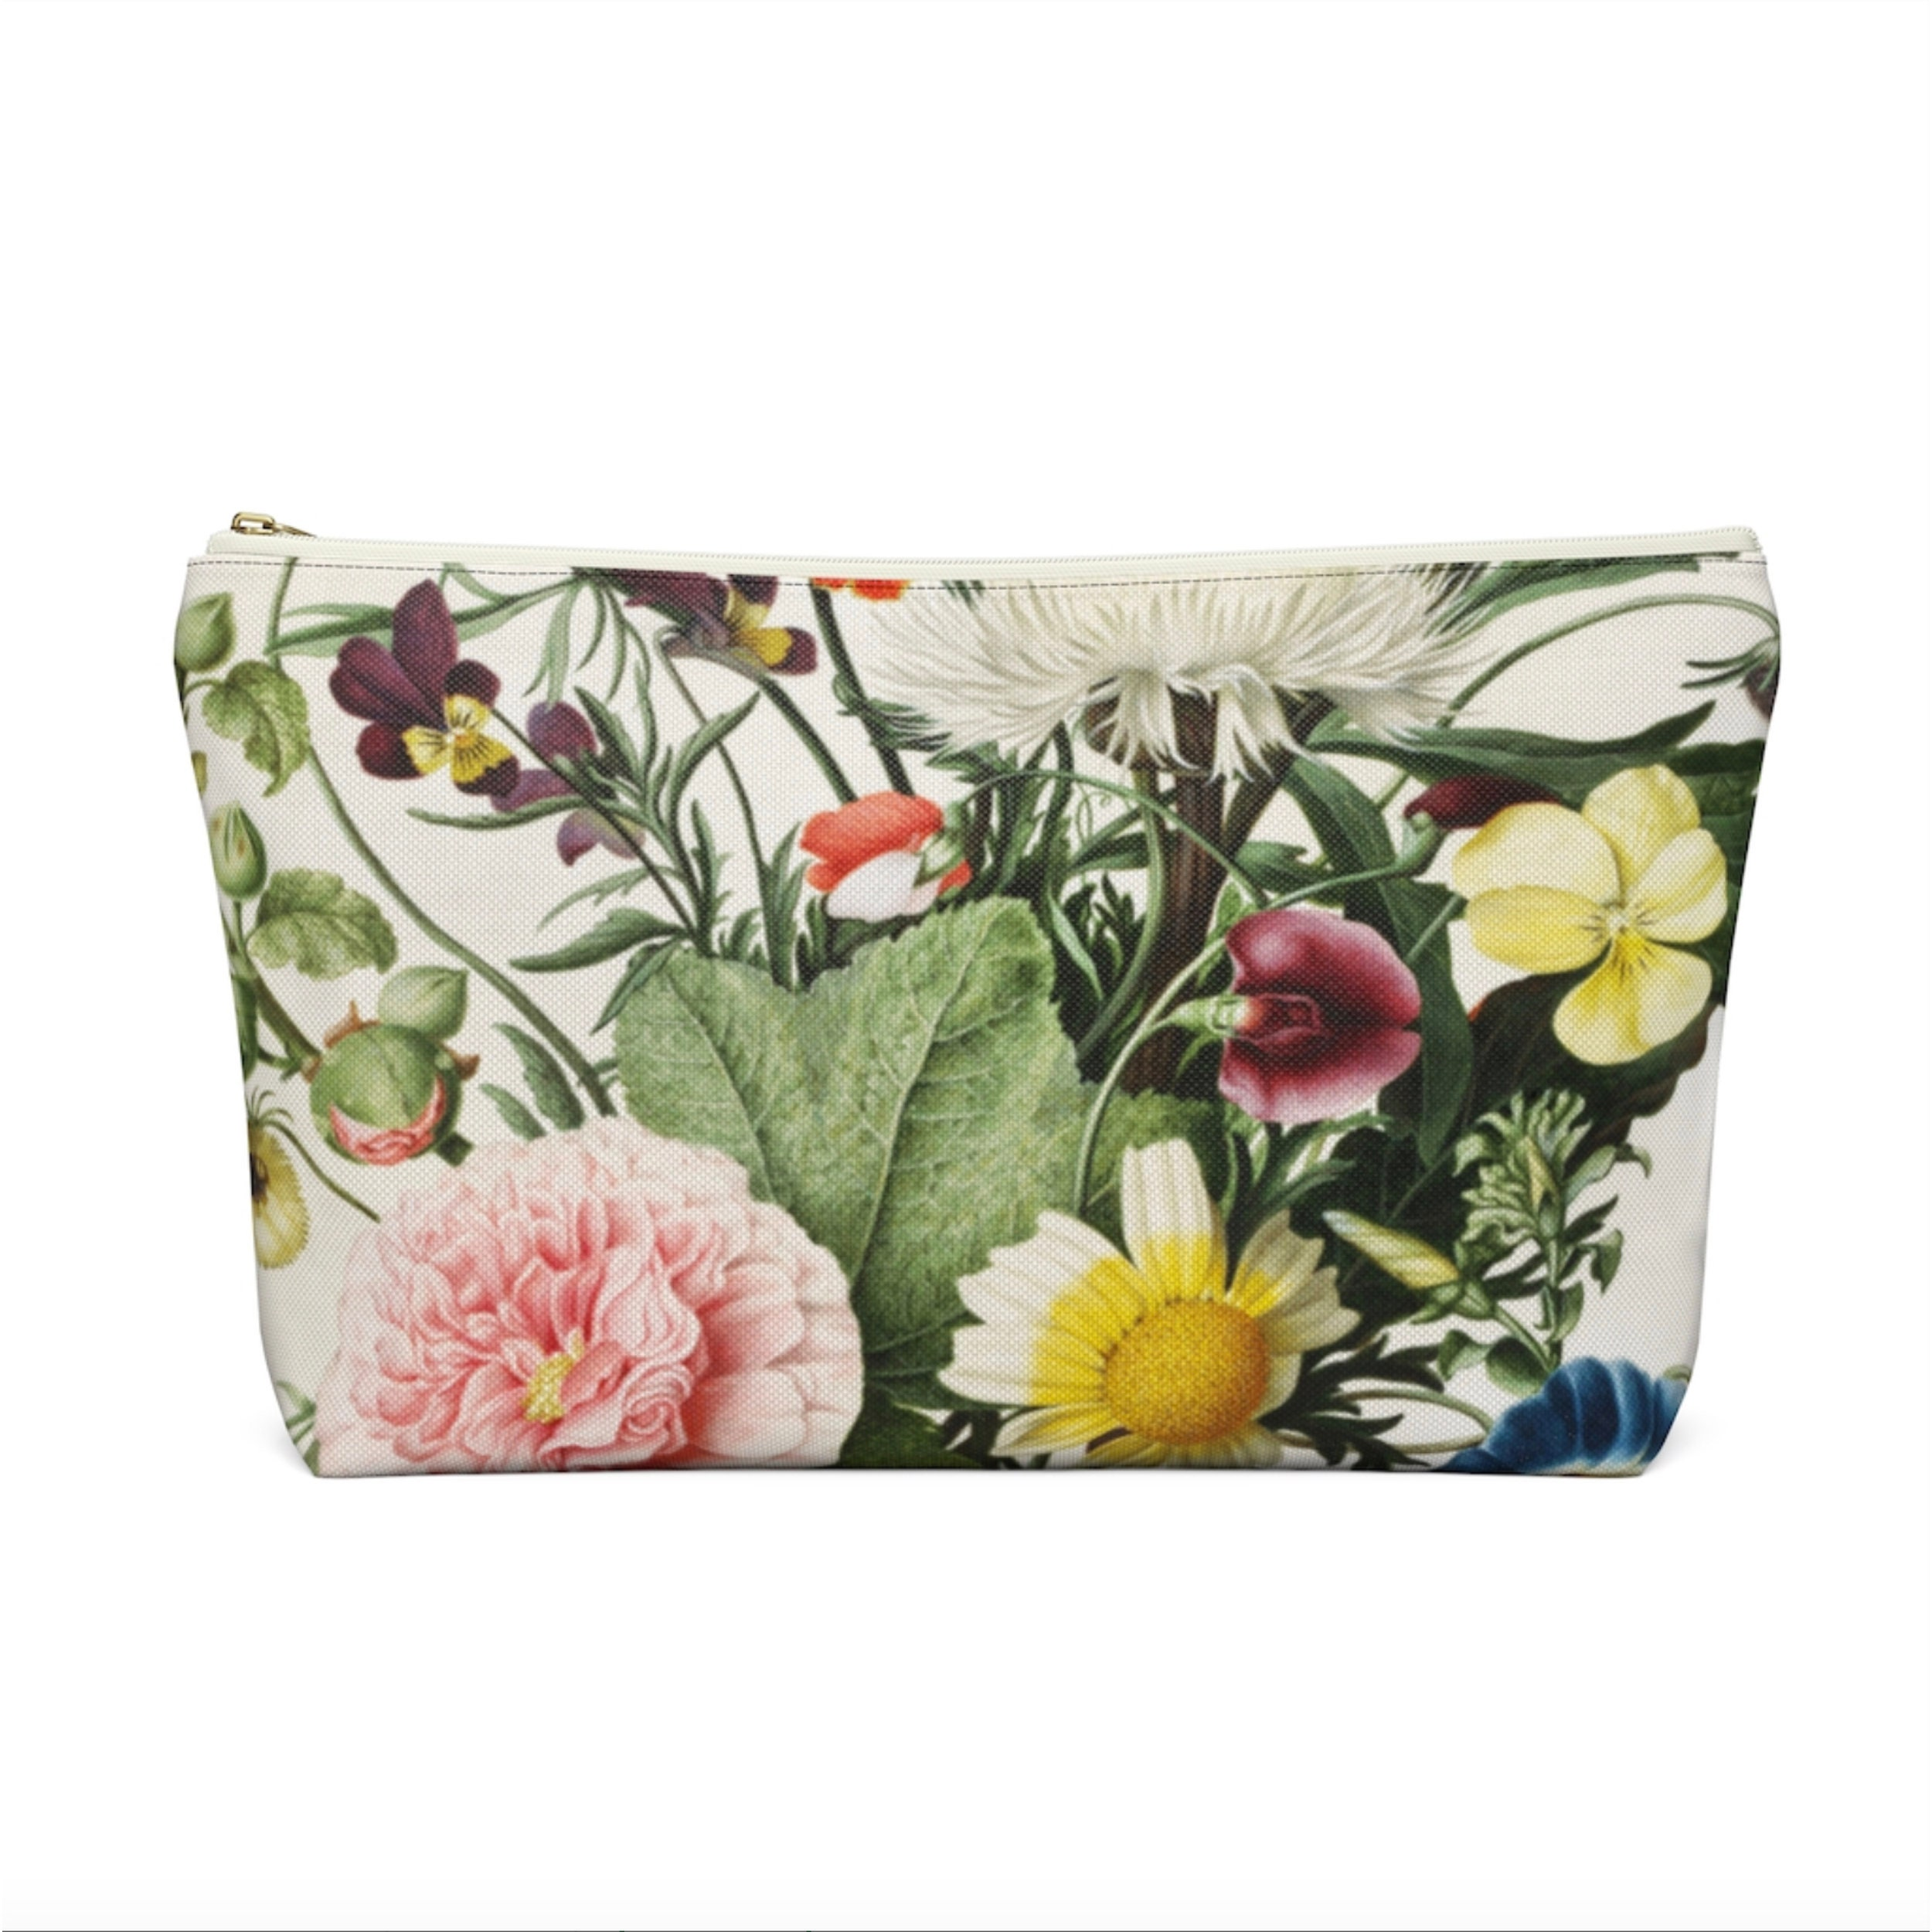 Green Floral Vintage Pattern Large Zippered Pouch